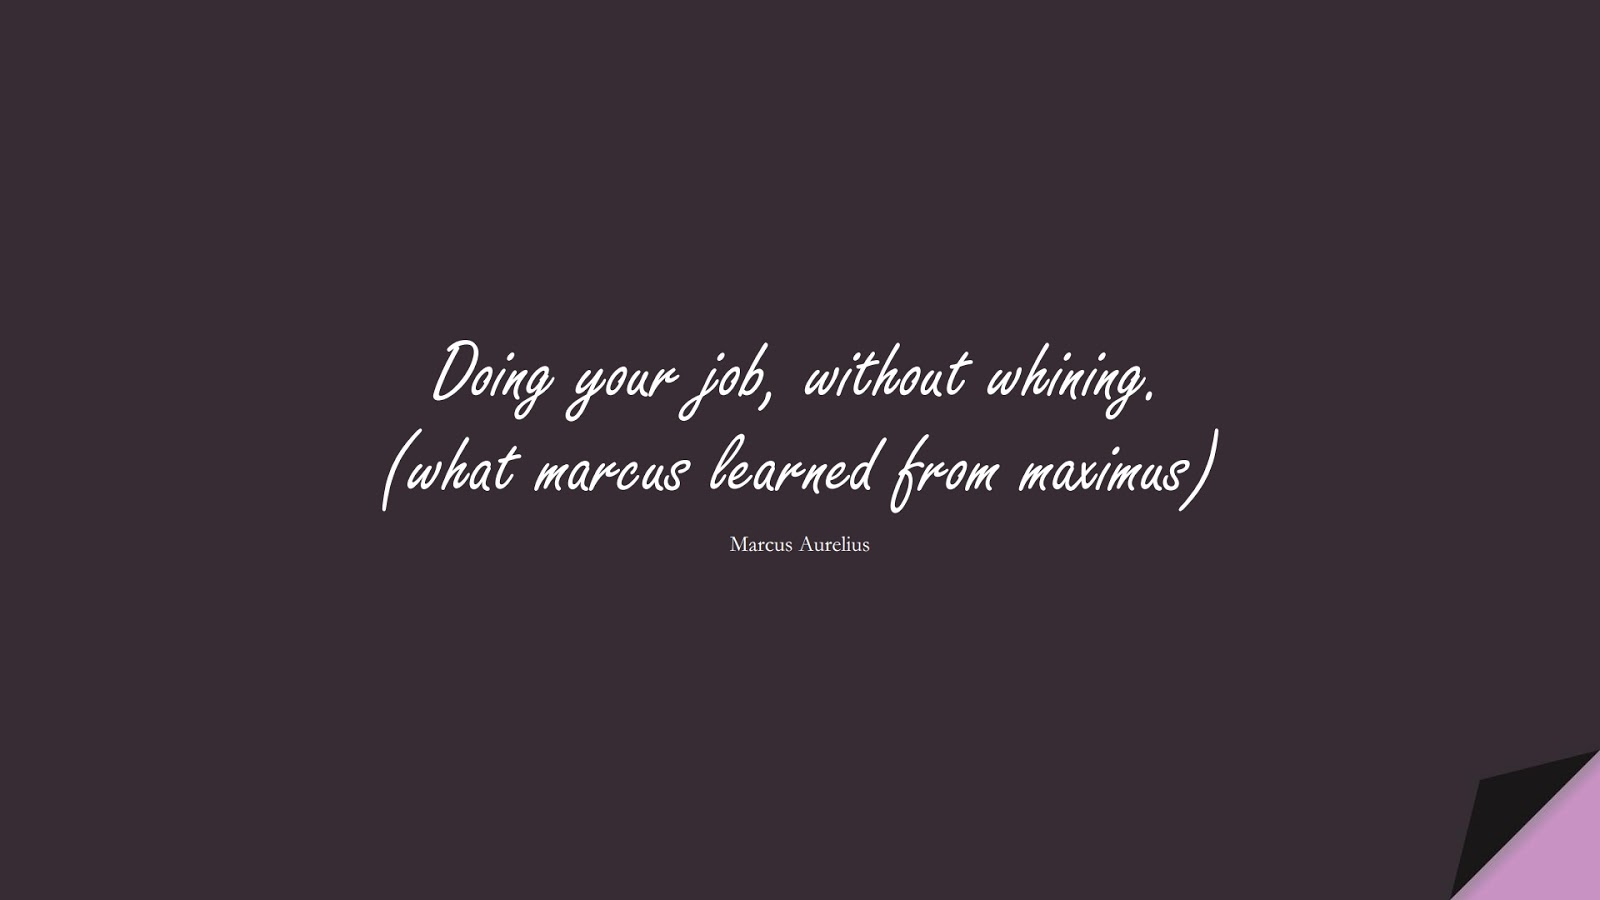 Doing your job, without whining. (what marcus learned from maximus) (Marcus Aurelius);  #MarcusAureliusQuotes